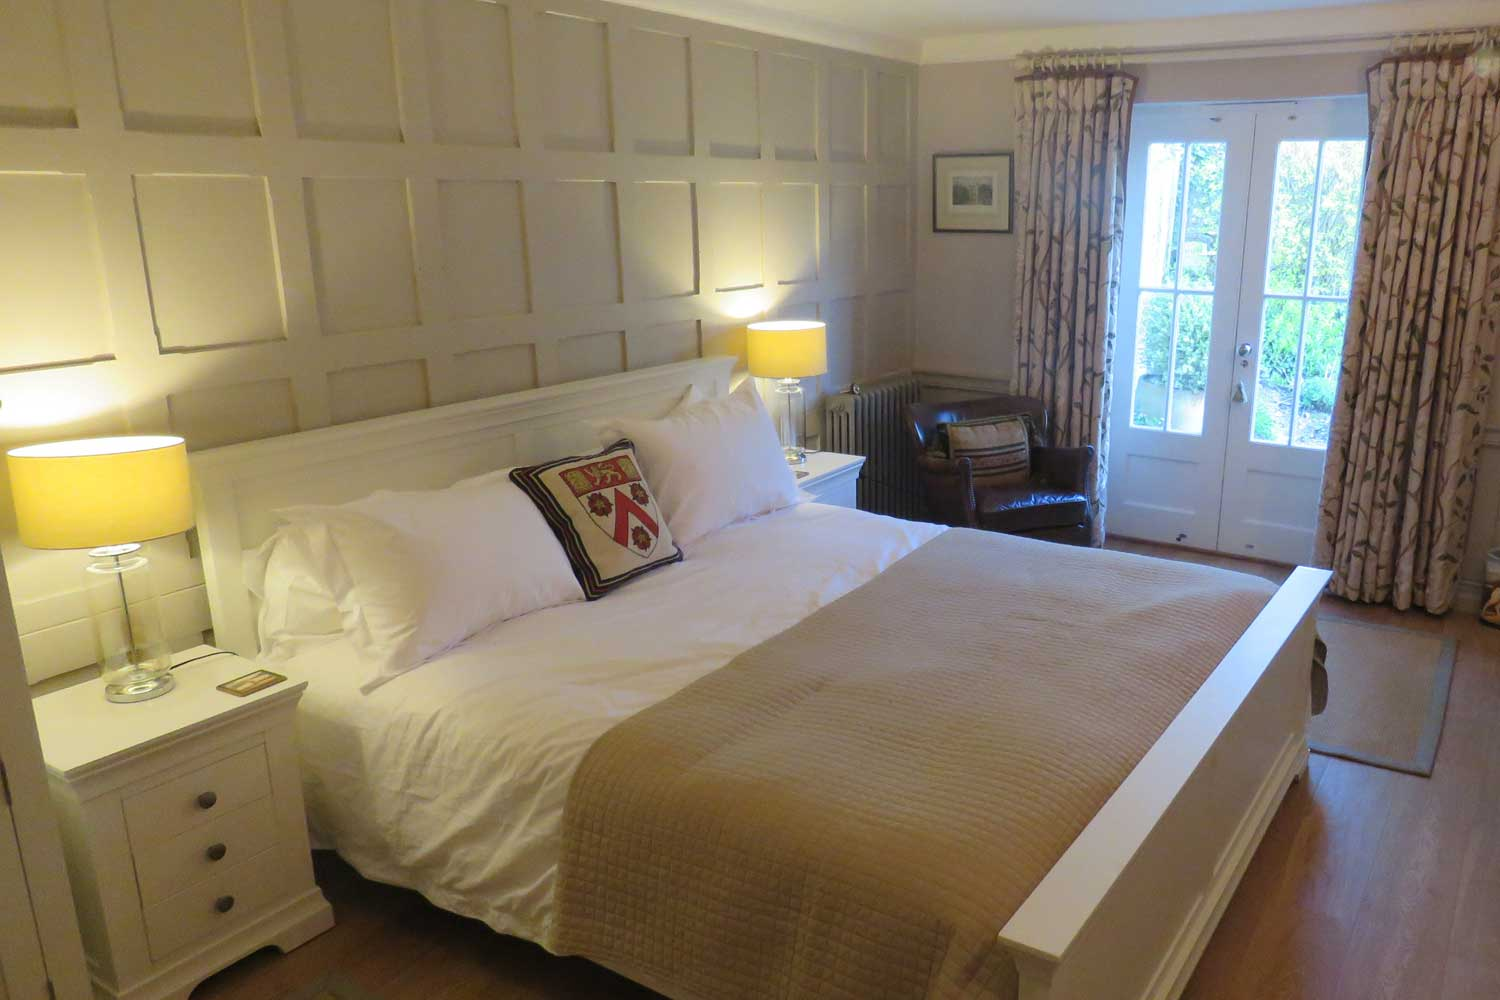 Large Comfortable Beds | Bed & Breakfast, Nether Wallop, River Test Valley, England